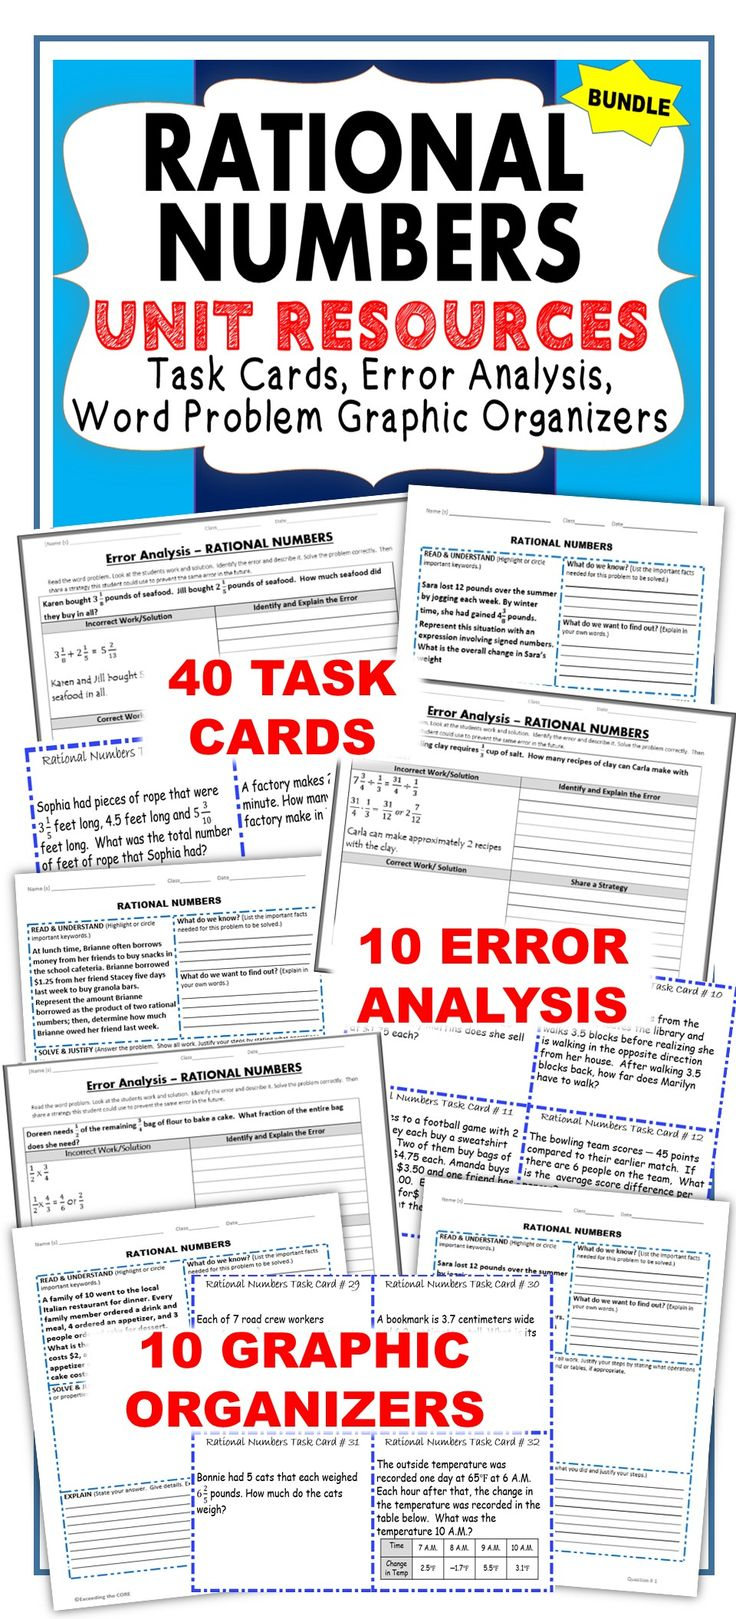 RATIONAL NUMBERS UNIT RESOURCES BUNDLE. This BUNDLE includes 40 task cards, 10 error analysis activities and 10 problem solving graphic organizers (a total of 60 real-world word problems). These resources are perfect for warm-ups, cooperative learning, spiral review, math centers, assessment prep &homework.  Topics: ✔ adding, subtracting, multiplying, dividing positive and negative FRACTIONS ✔ adding, subtracting, multiplying, dividing positive &negatives DECIMALS Common Core: 7NS1, 7NS2, 7NS3: